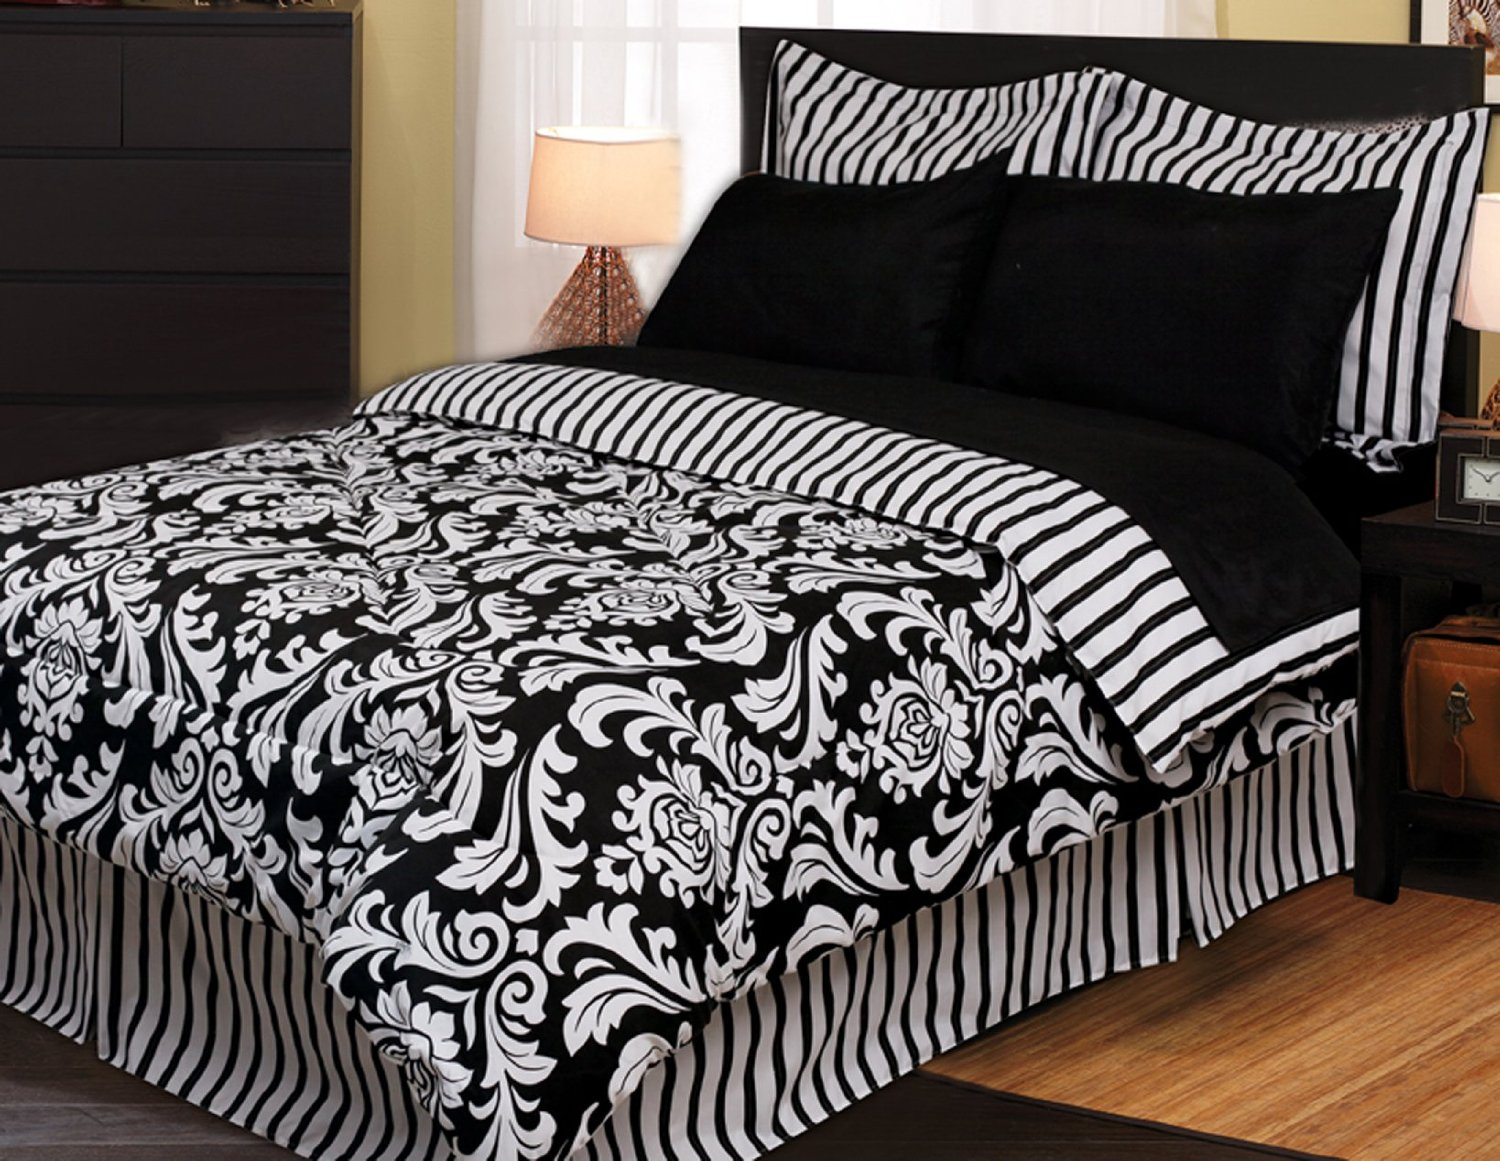 Comfy Bedroom with black and white comforter sets and laminate porcelain floor also curtain and sidetables